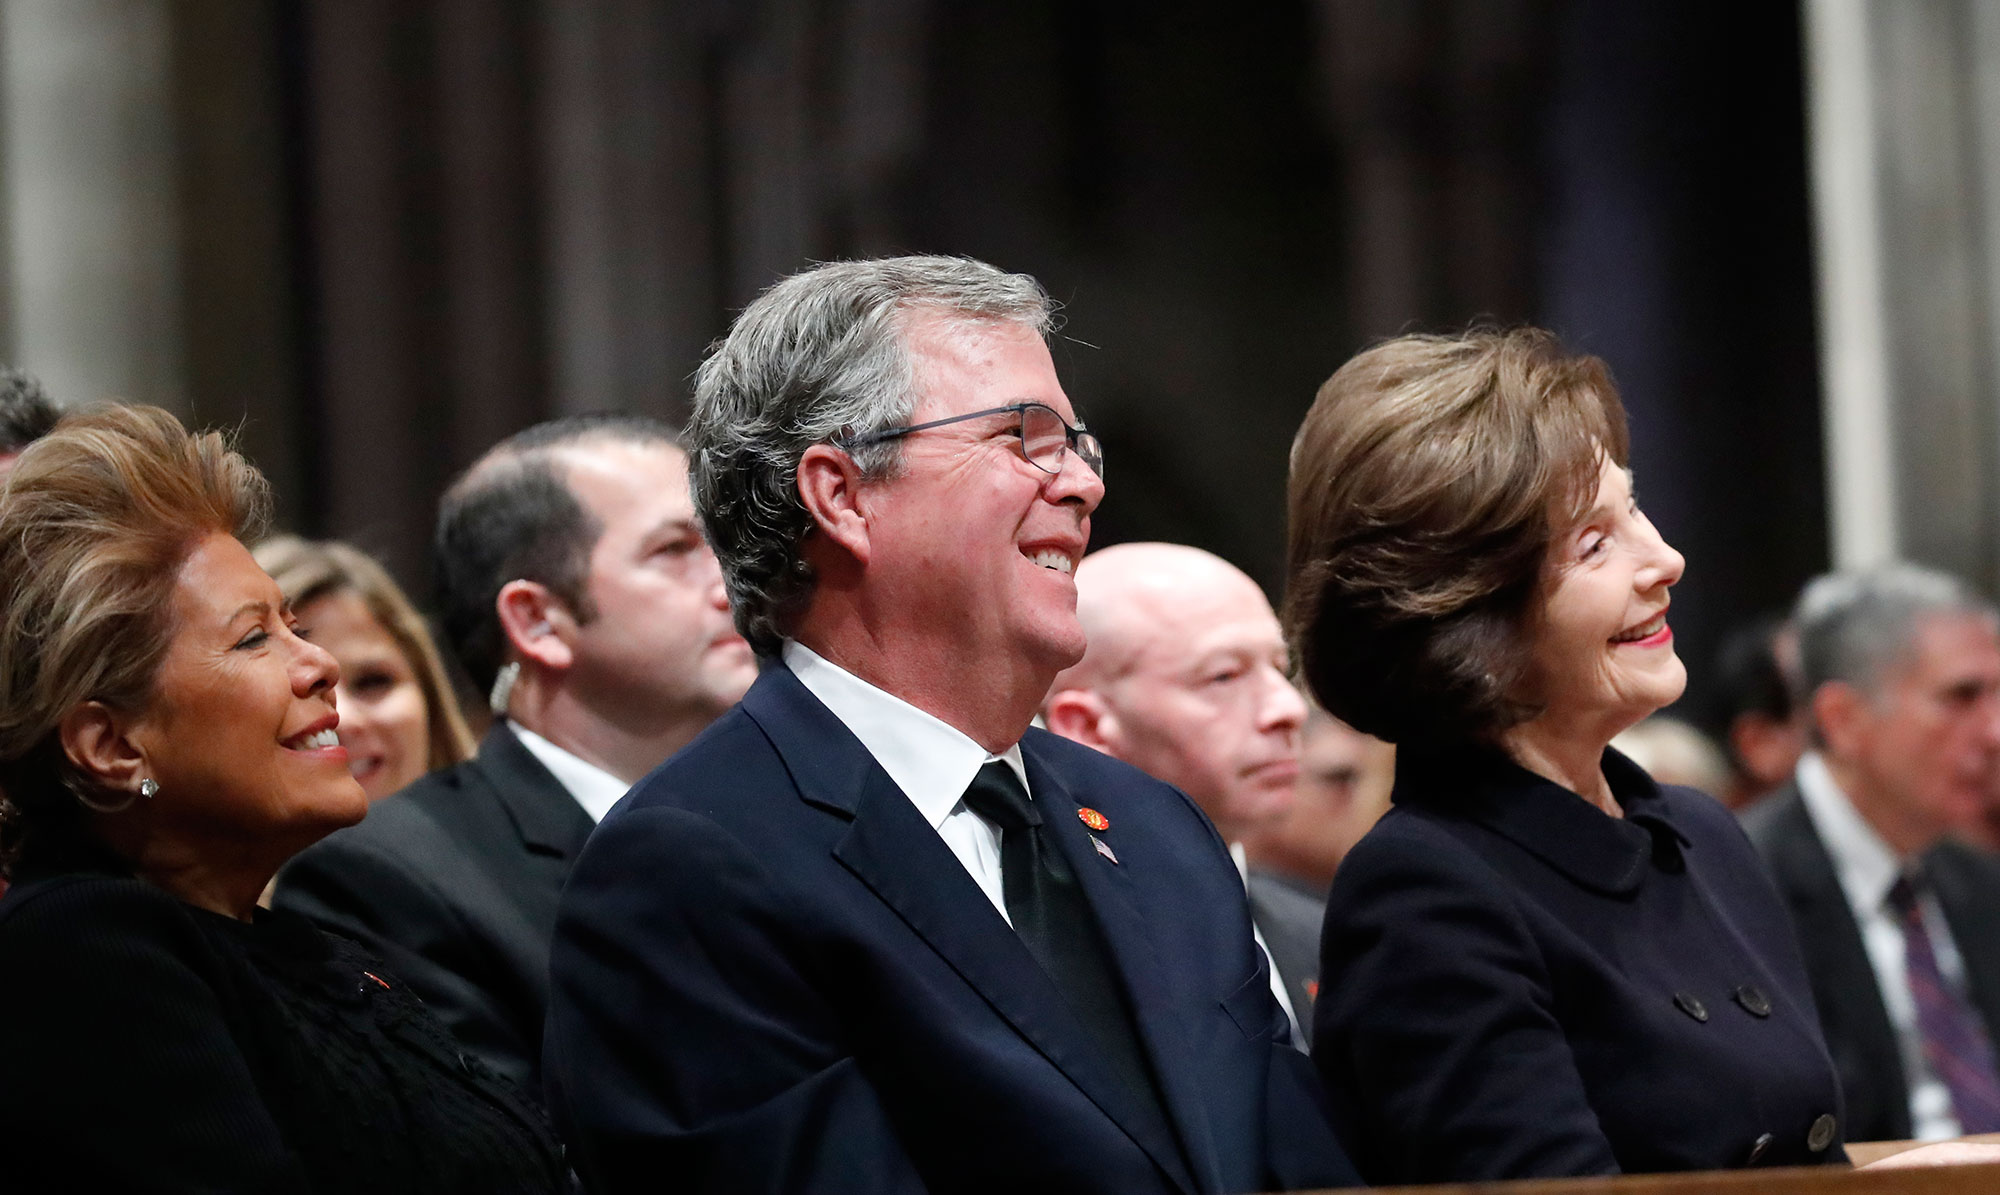 "<div class=""meta image-caption""><div class=""origin-logo origin-image none""><span>none</span></div><span class=""caption-text"">Columba Bush, Jeb Bush and Laura Bush listen as former President George W. Bush speaks during the State Funeral. (Alex Brandon - Pool/Getty Images)</span></div>"